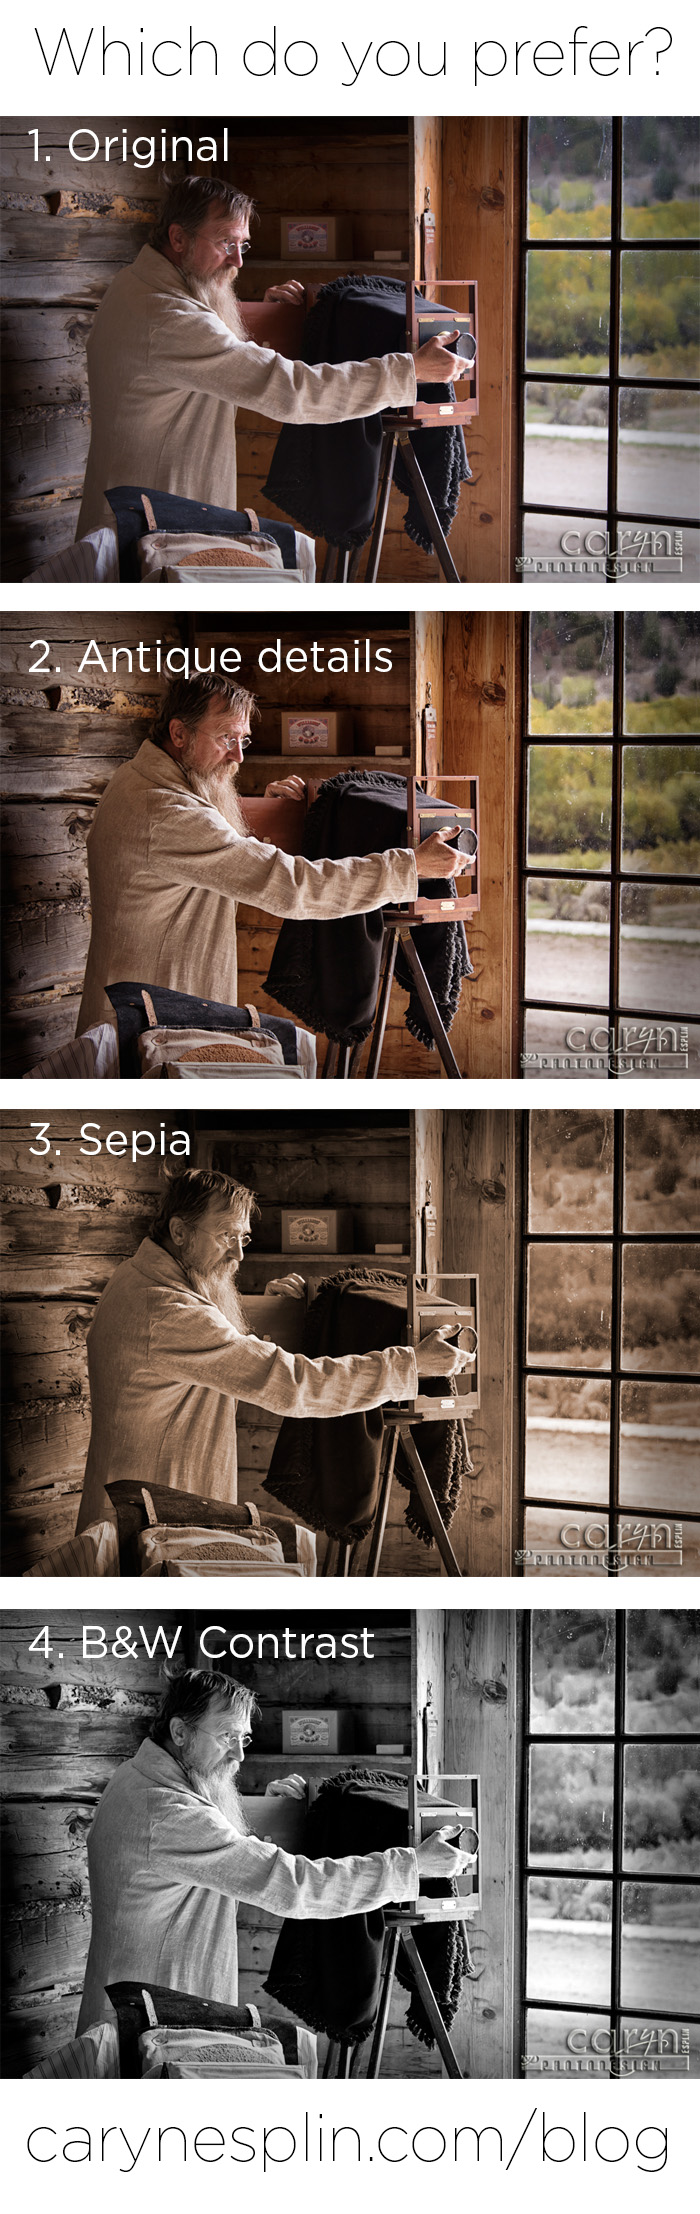 Which Style? - Caryn Esplin - Bannack Ghost Town - Living History Weekend - Photographer